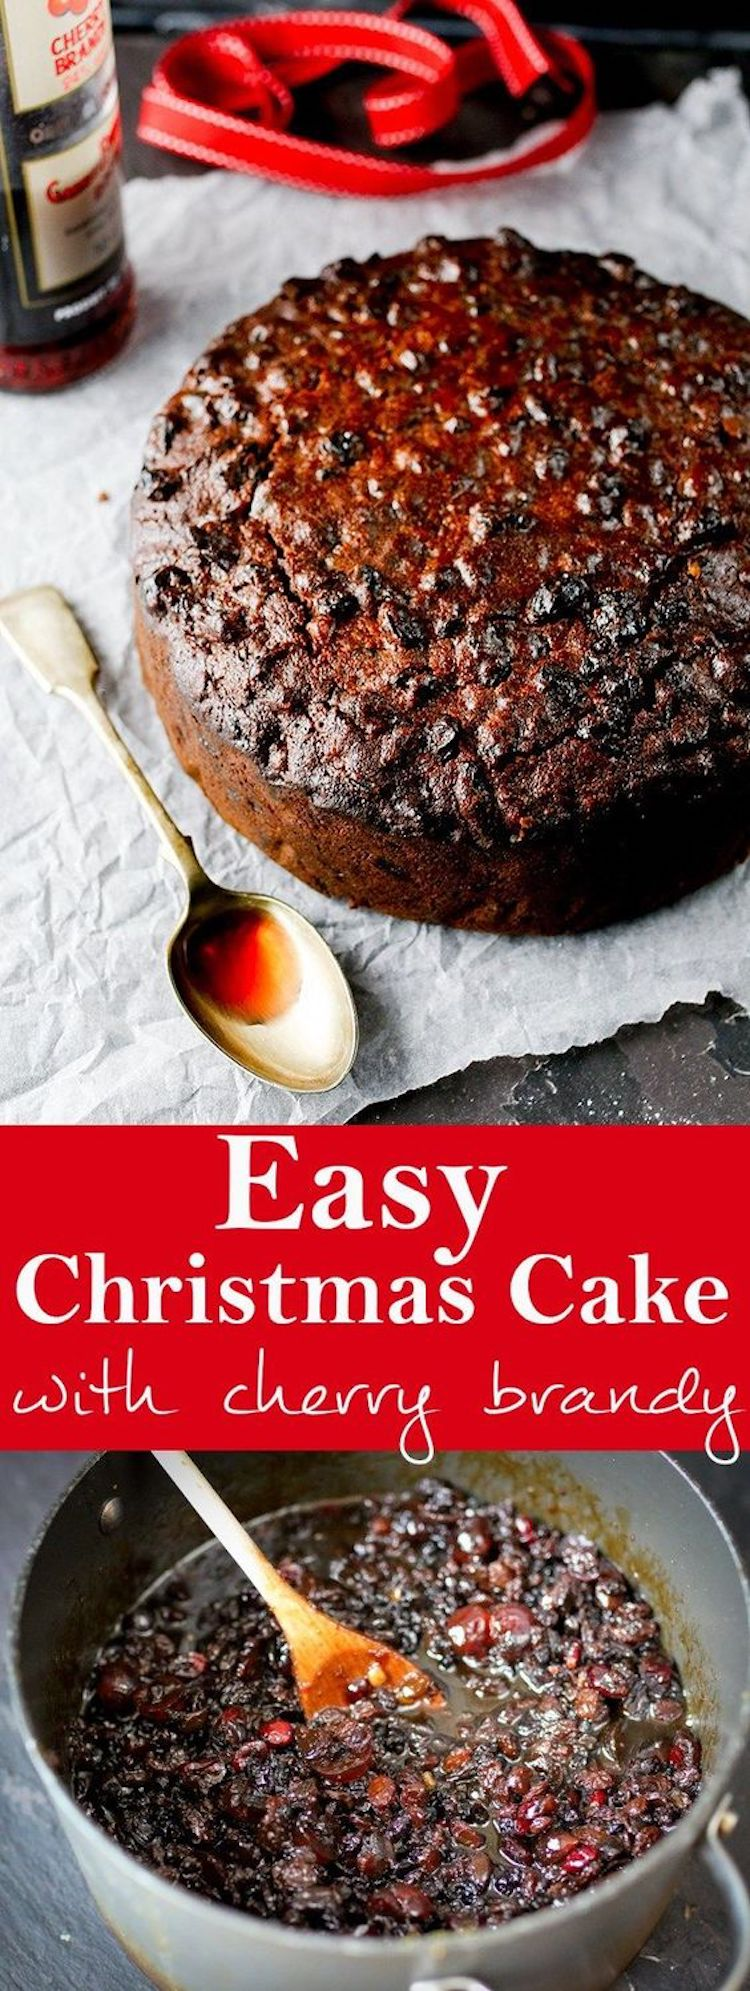 Easy Christmas Cake Recipe (With Cherry Brandy)